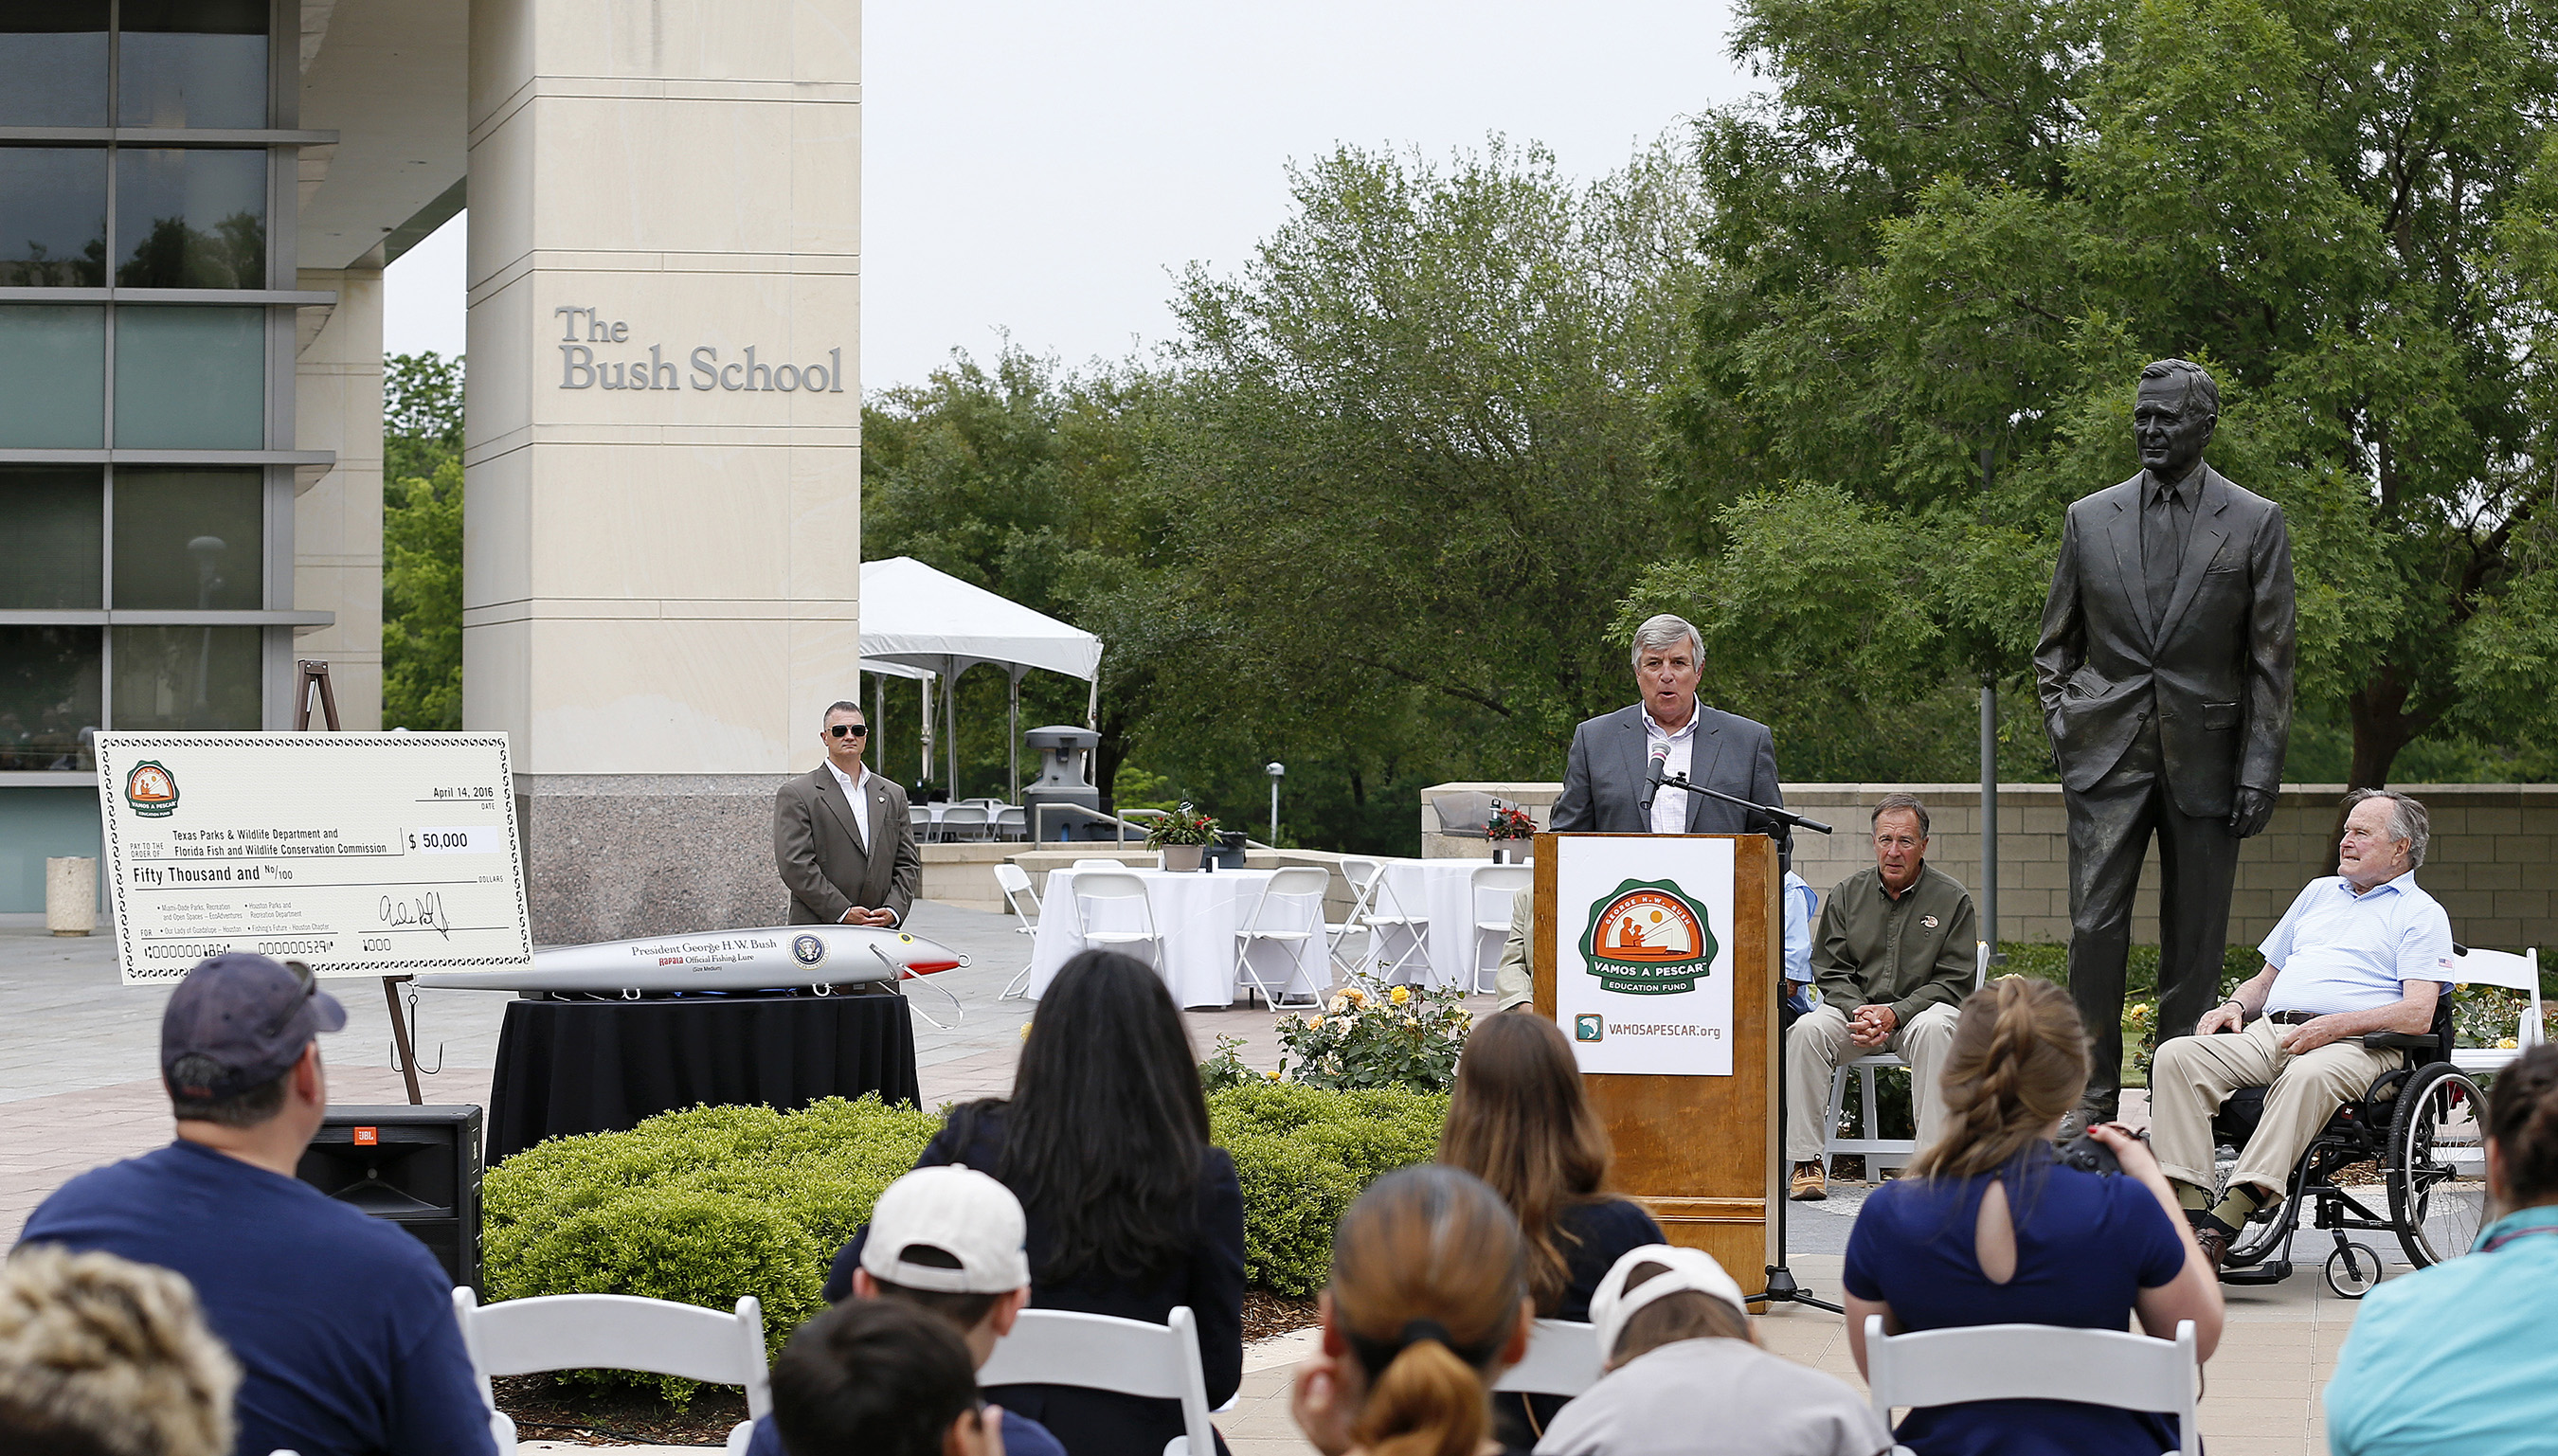 Frank Peterson, President and CEO of Recreational Boating & Fishing Foundation (RBFF), announces a donation to organizations bringing conservation, education and fishing and boating experiences to Hispanic families during a RBFF event at the George Bush Presidential Library on Thursday, April 14, 2016, in College Station, Texas. RBFF is a nonprofit organization whose mission is to increase participation in recreational angling and boating, thereby protecting and restoring the nation's aquatic natural resources. (Aaron M. Sprecher/AP Images for RBFF)